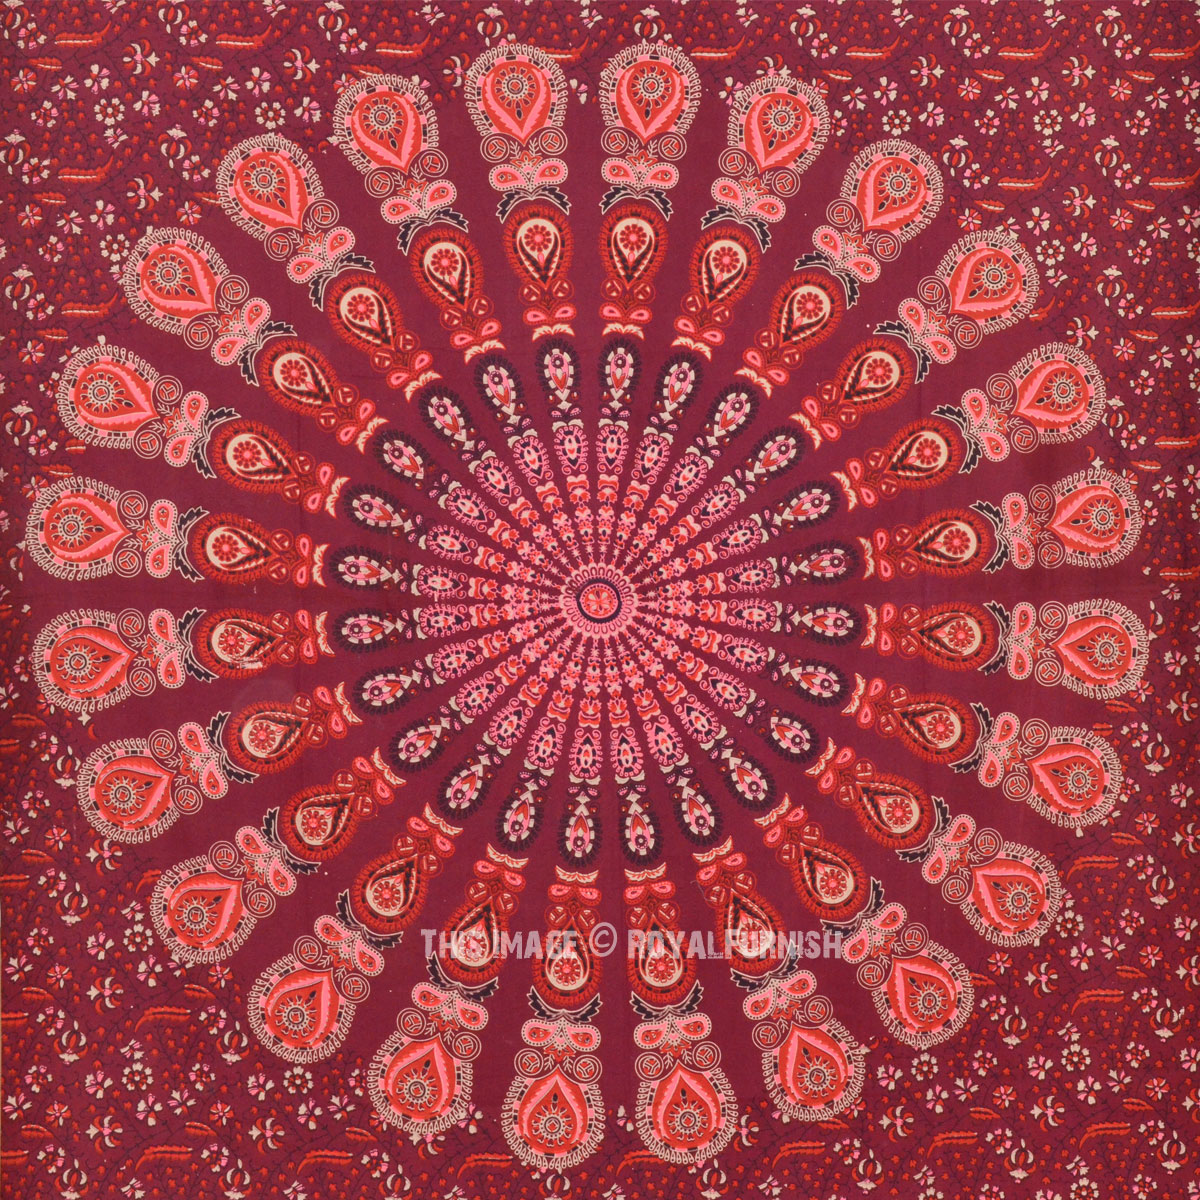 Black And Blue Floral Wallpaper Vibrant Maroon Peacock Mandala Wall Tapestry Indian